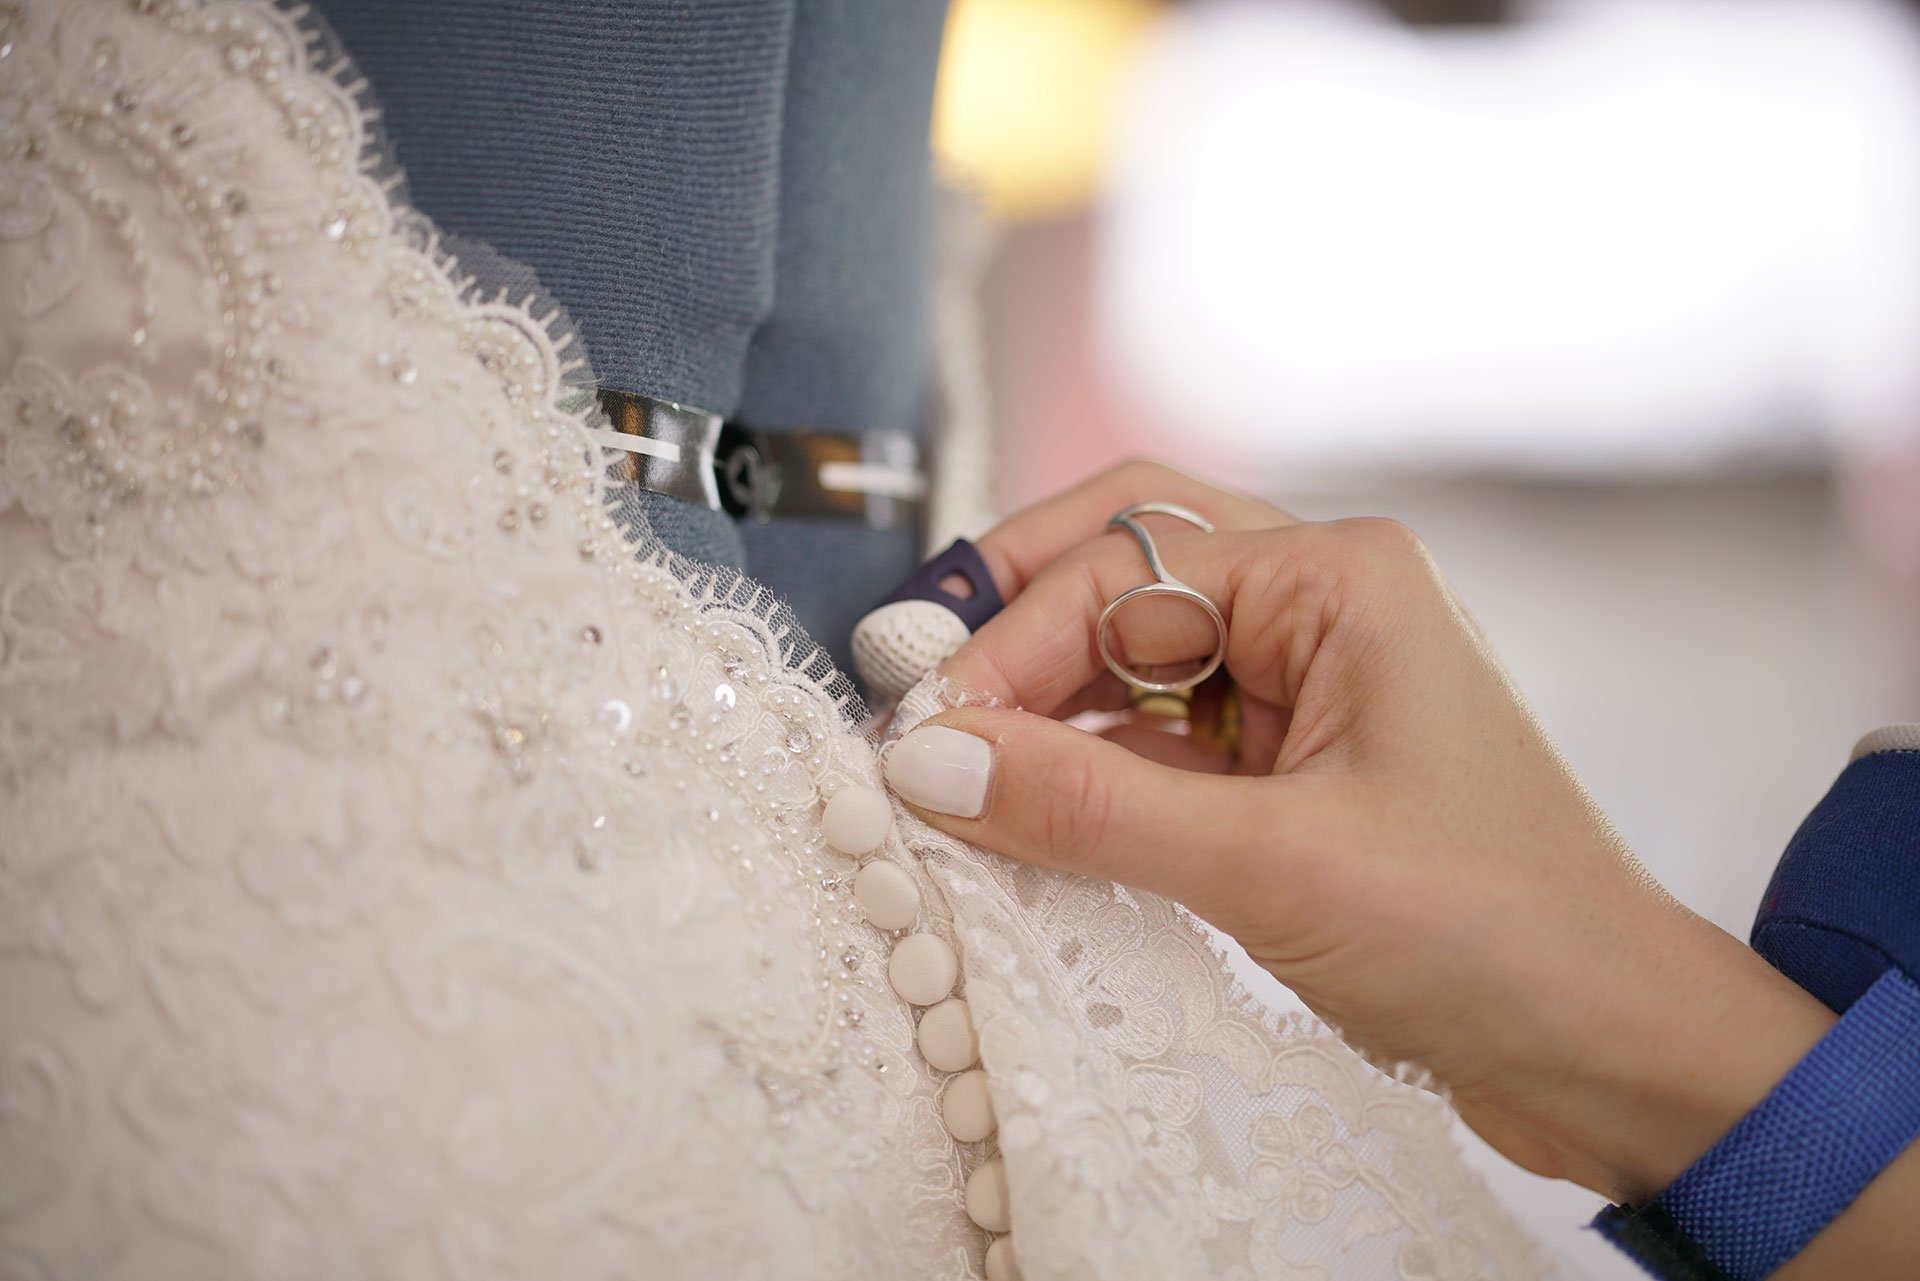 Wedding dress size adjustments